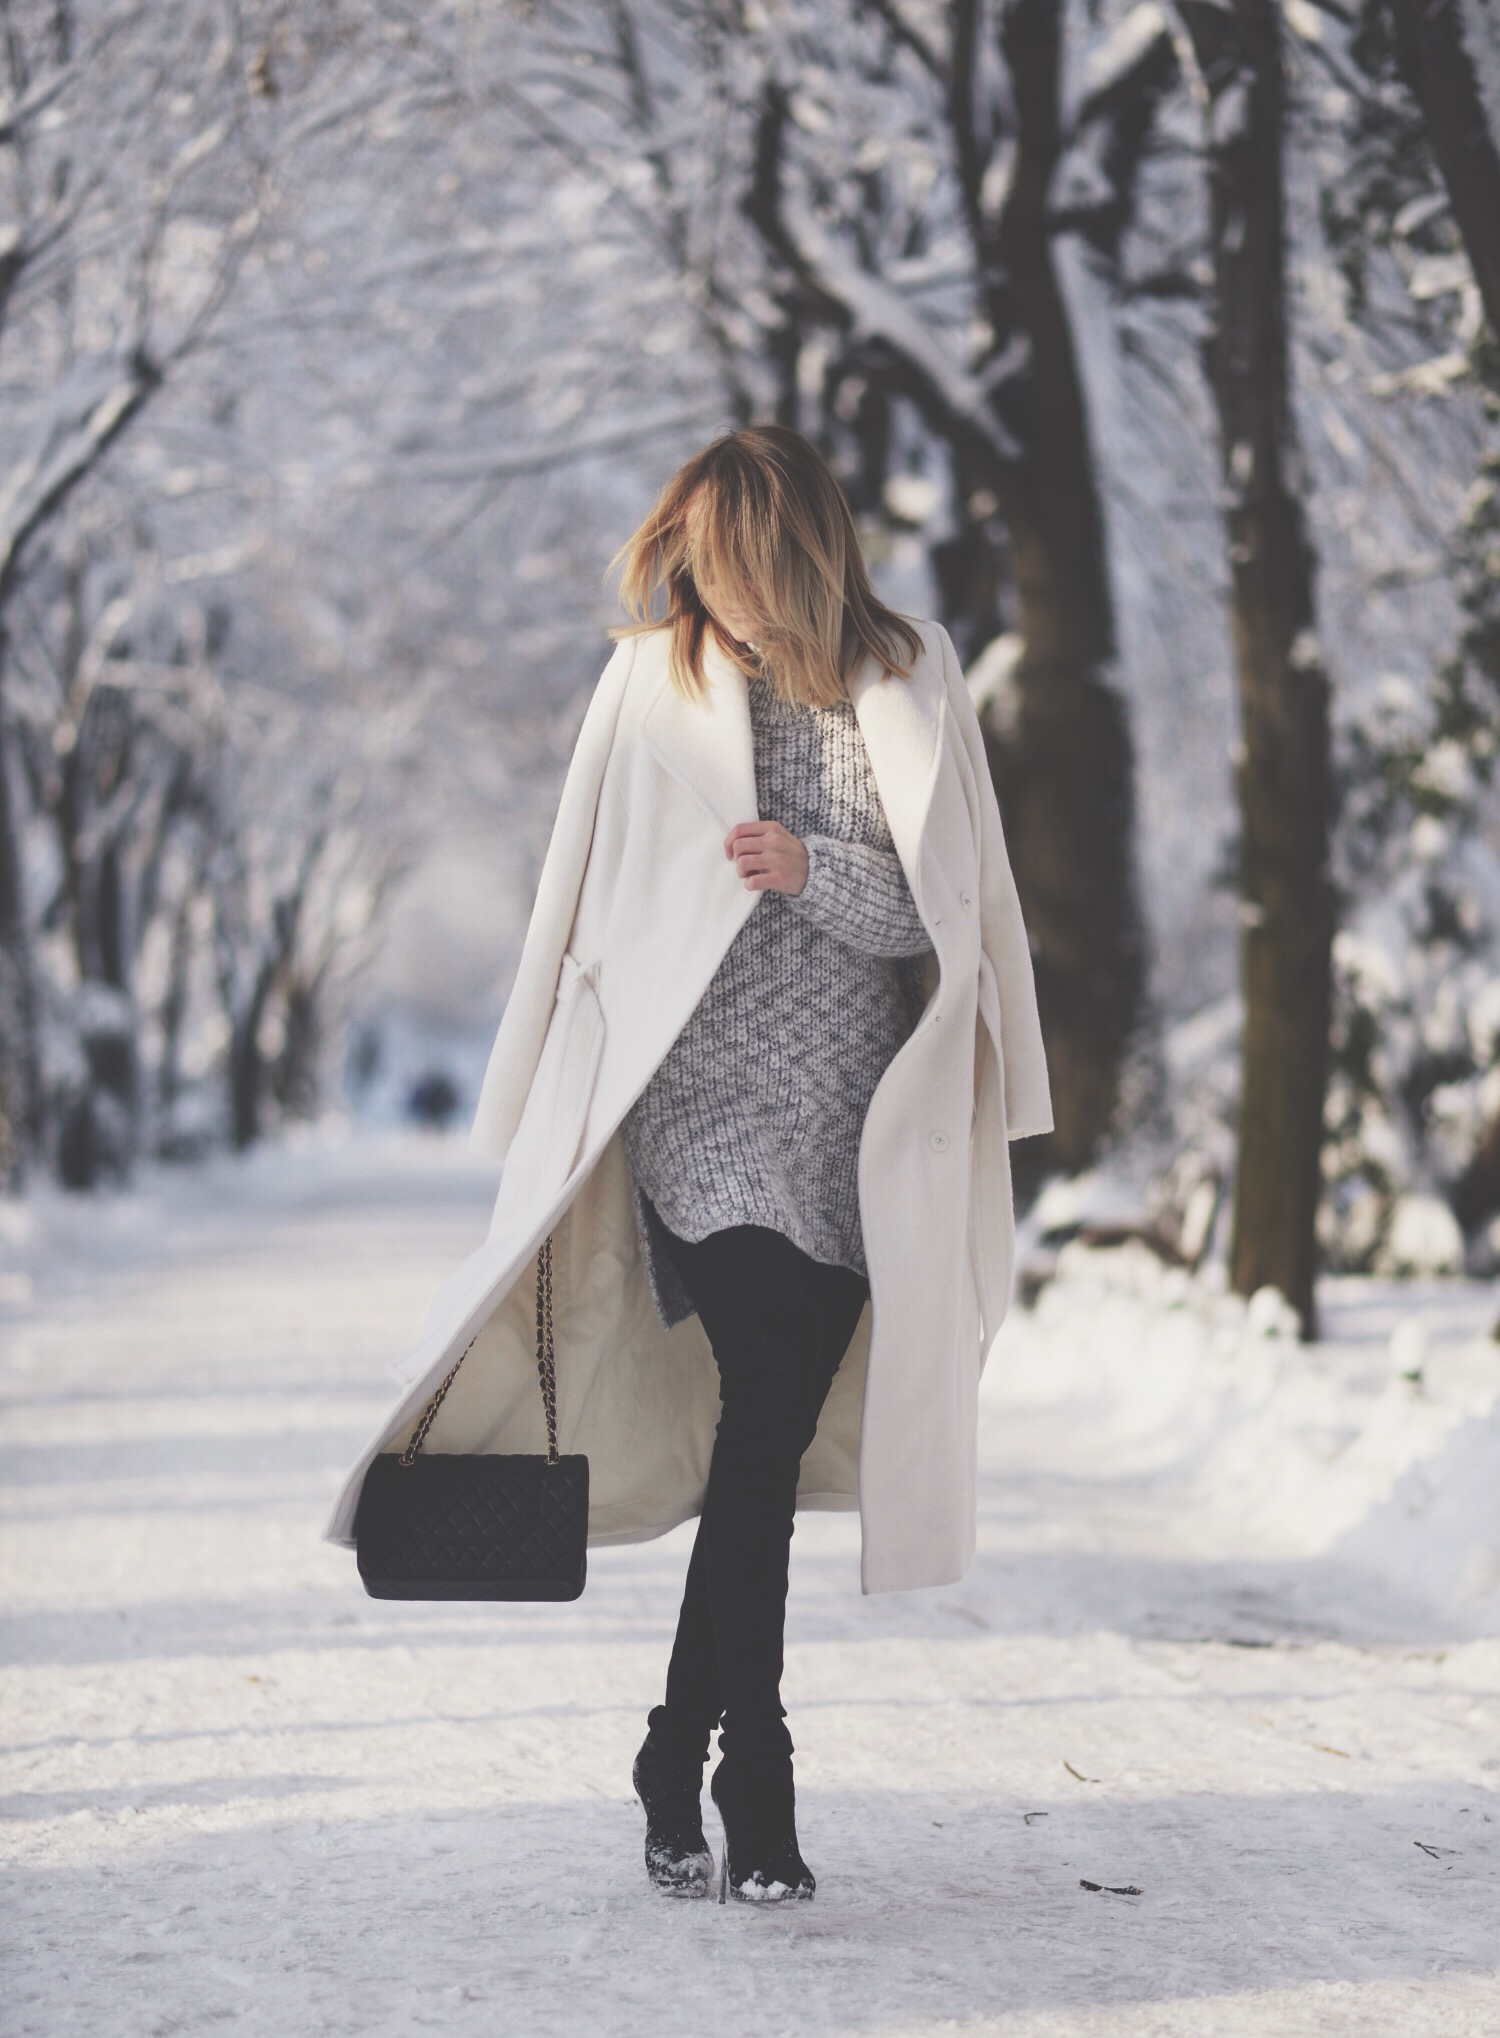 Winter Outfit Ideas: Silvia Postolatiev is wearing a white long coat from Marks & Spencer, grey knit top from Zara, black over the knee boots from Casadei, bag from Chanel and the black jeans are from Mango